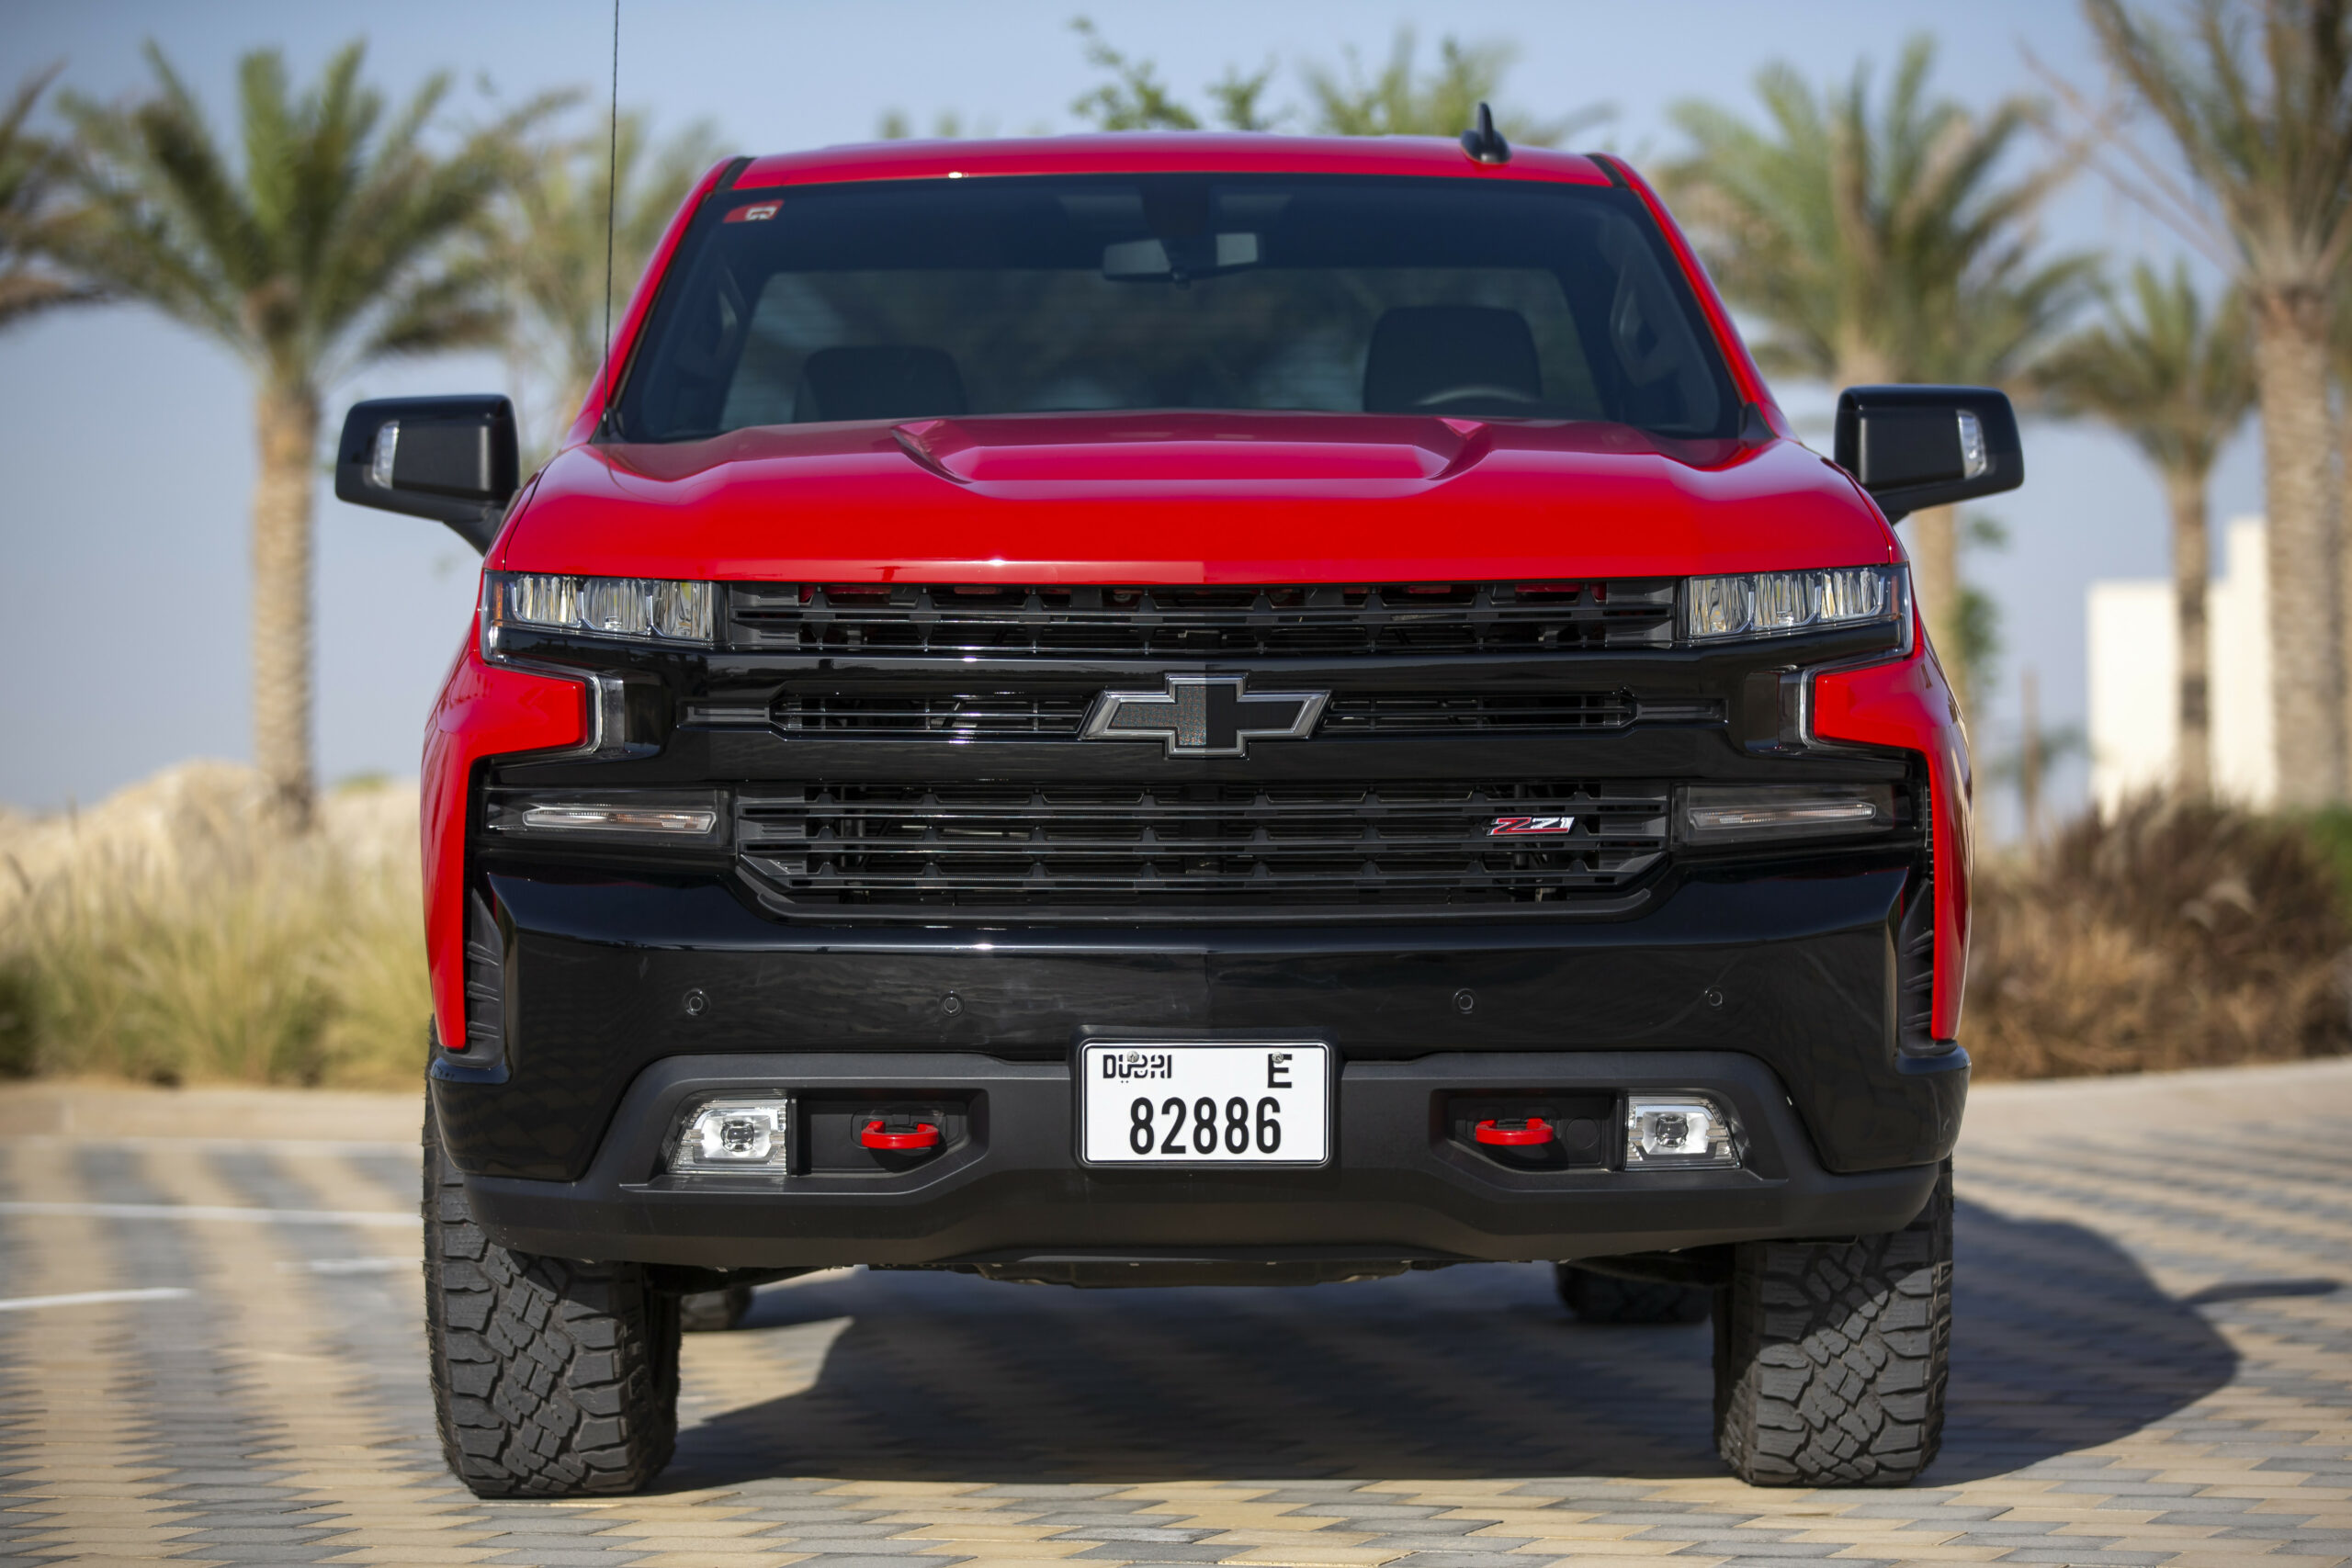 Chevrolet Pressroom - Middle East - Images - chevrolet cars 2020